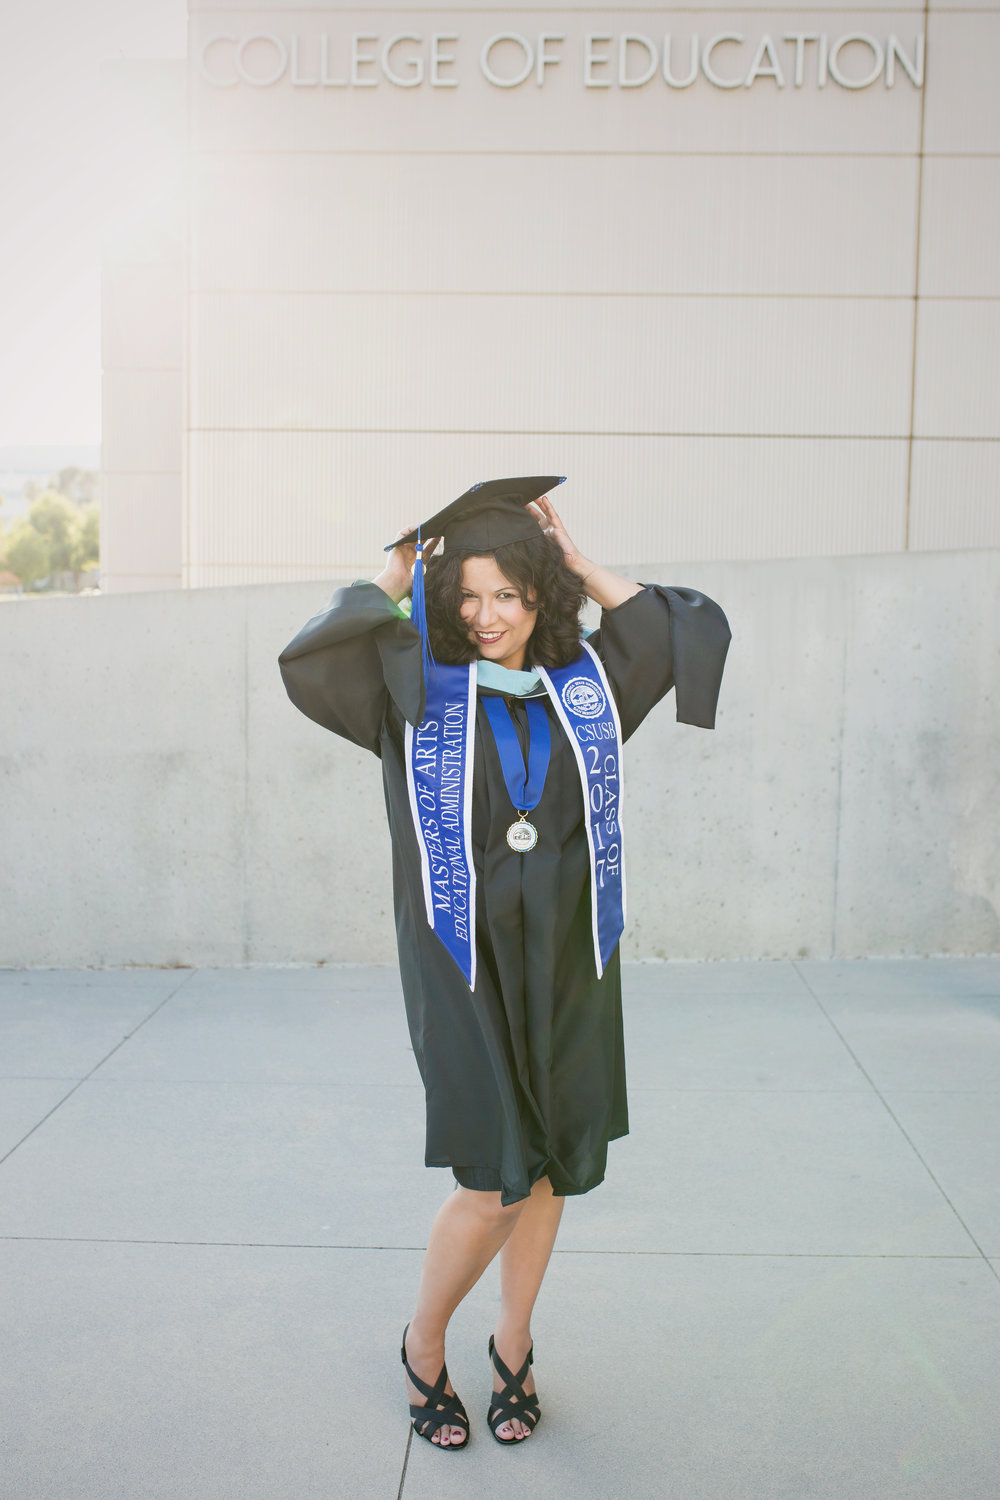 This was my absolute favorite from the session.  Nothing can top standing in front of the building she went to for classes- the college of education, wearing her cap and gown!  Oh and that smile and flirty feet!